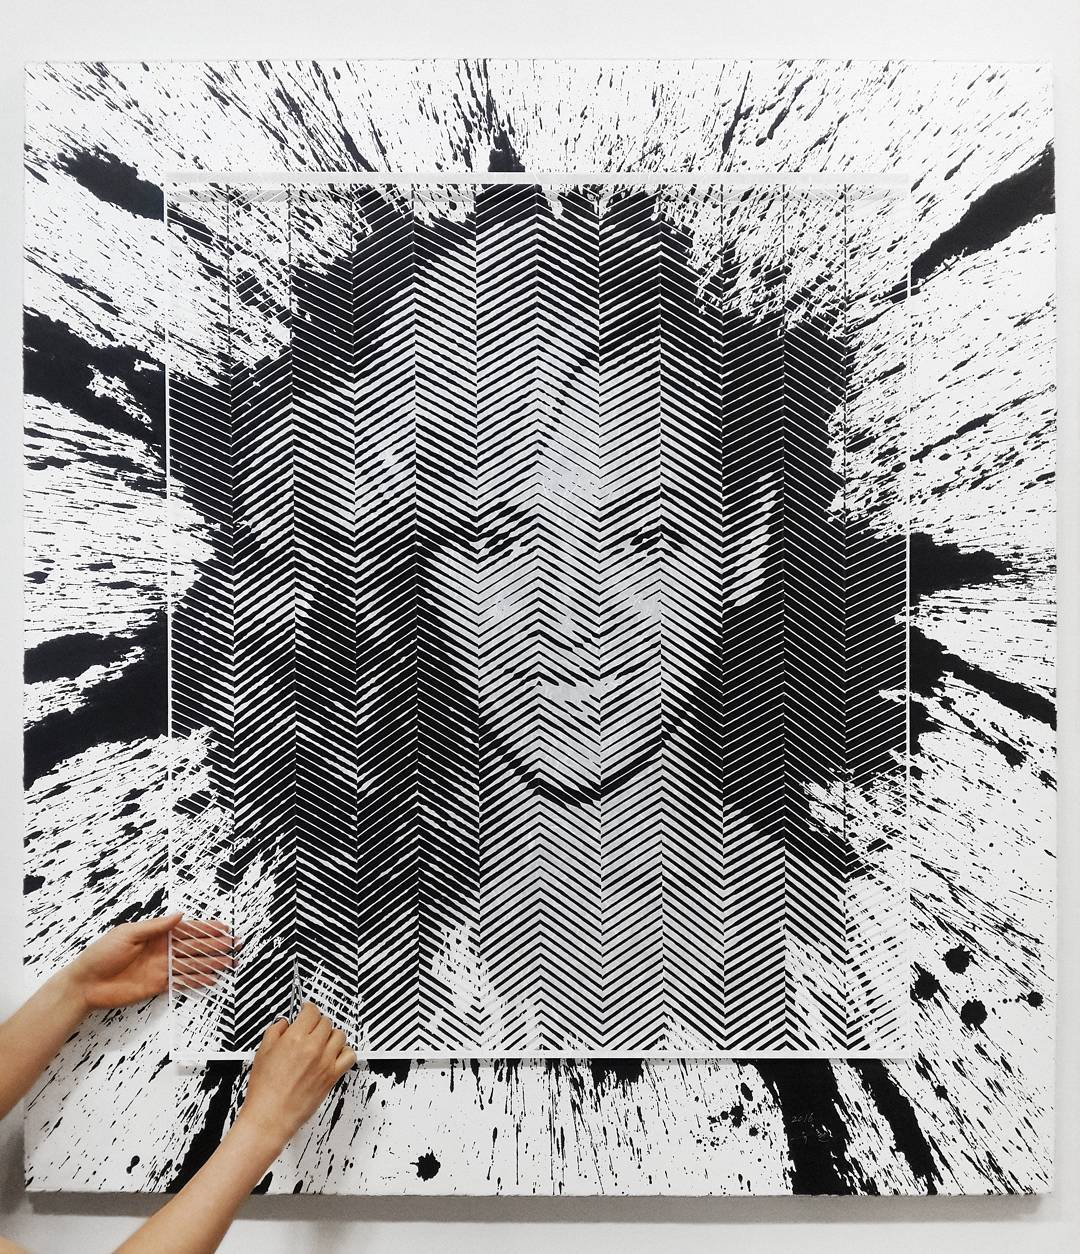 Artist Hand-Carves Complex Photorealistic Portraits Out of Paper - Beyonce